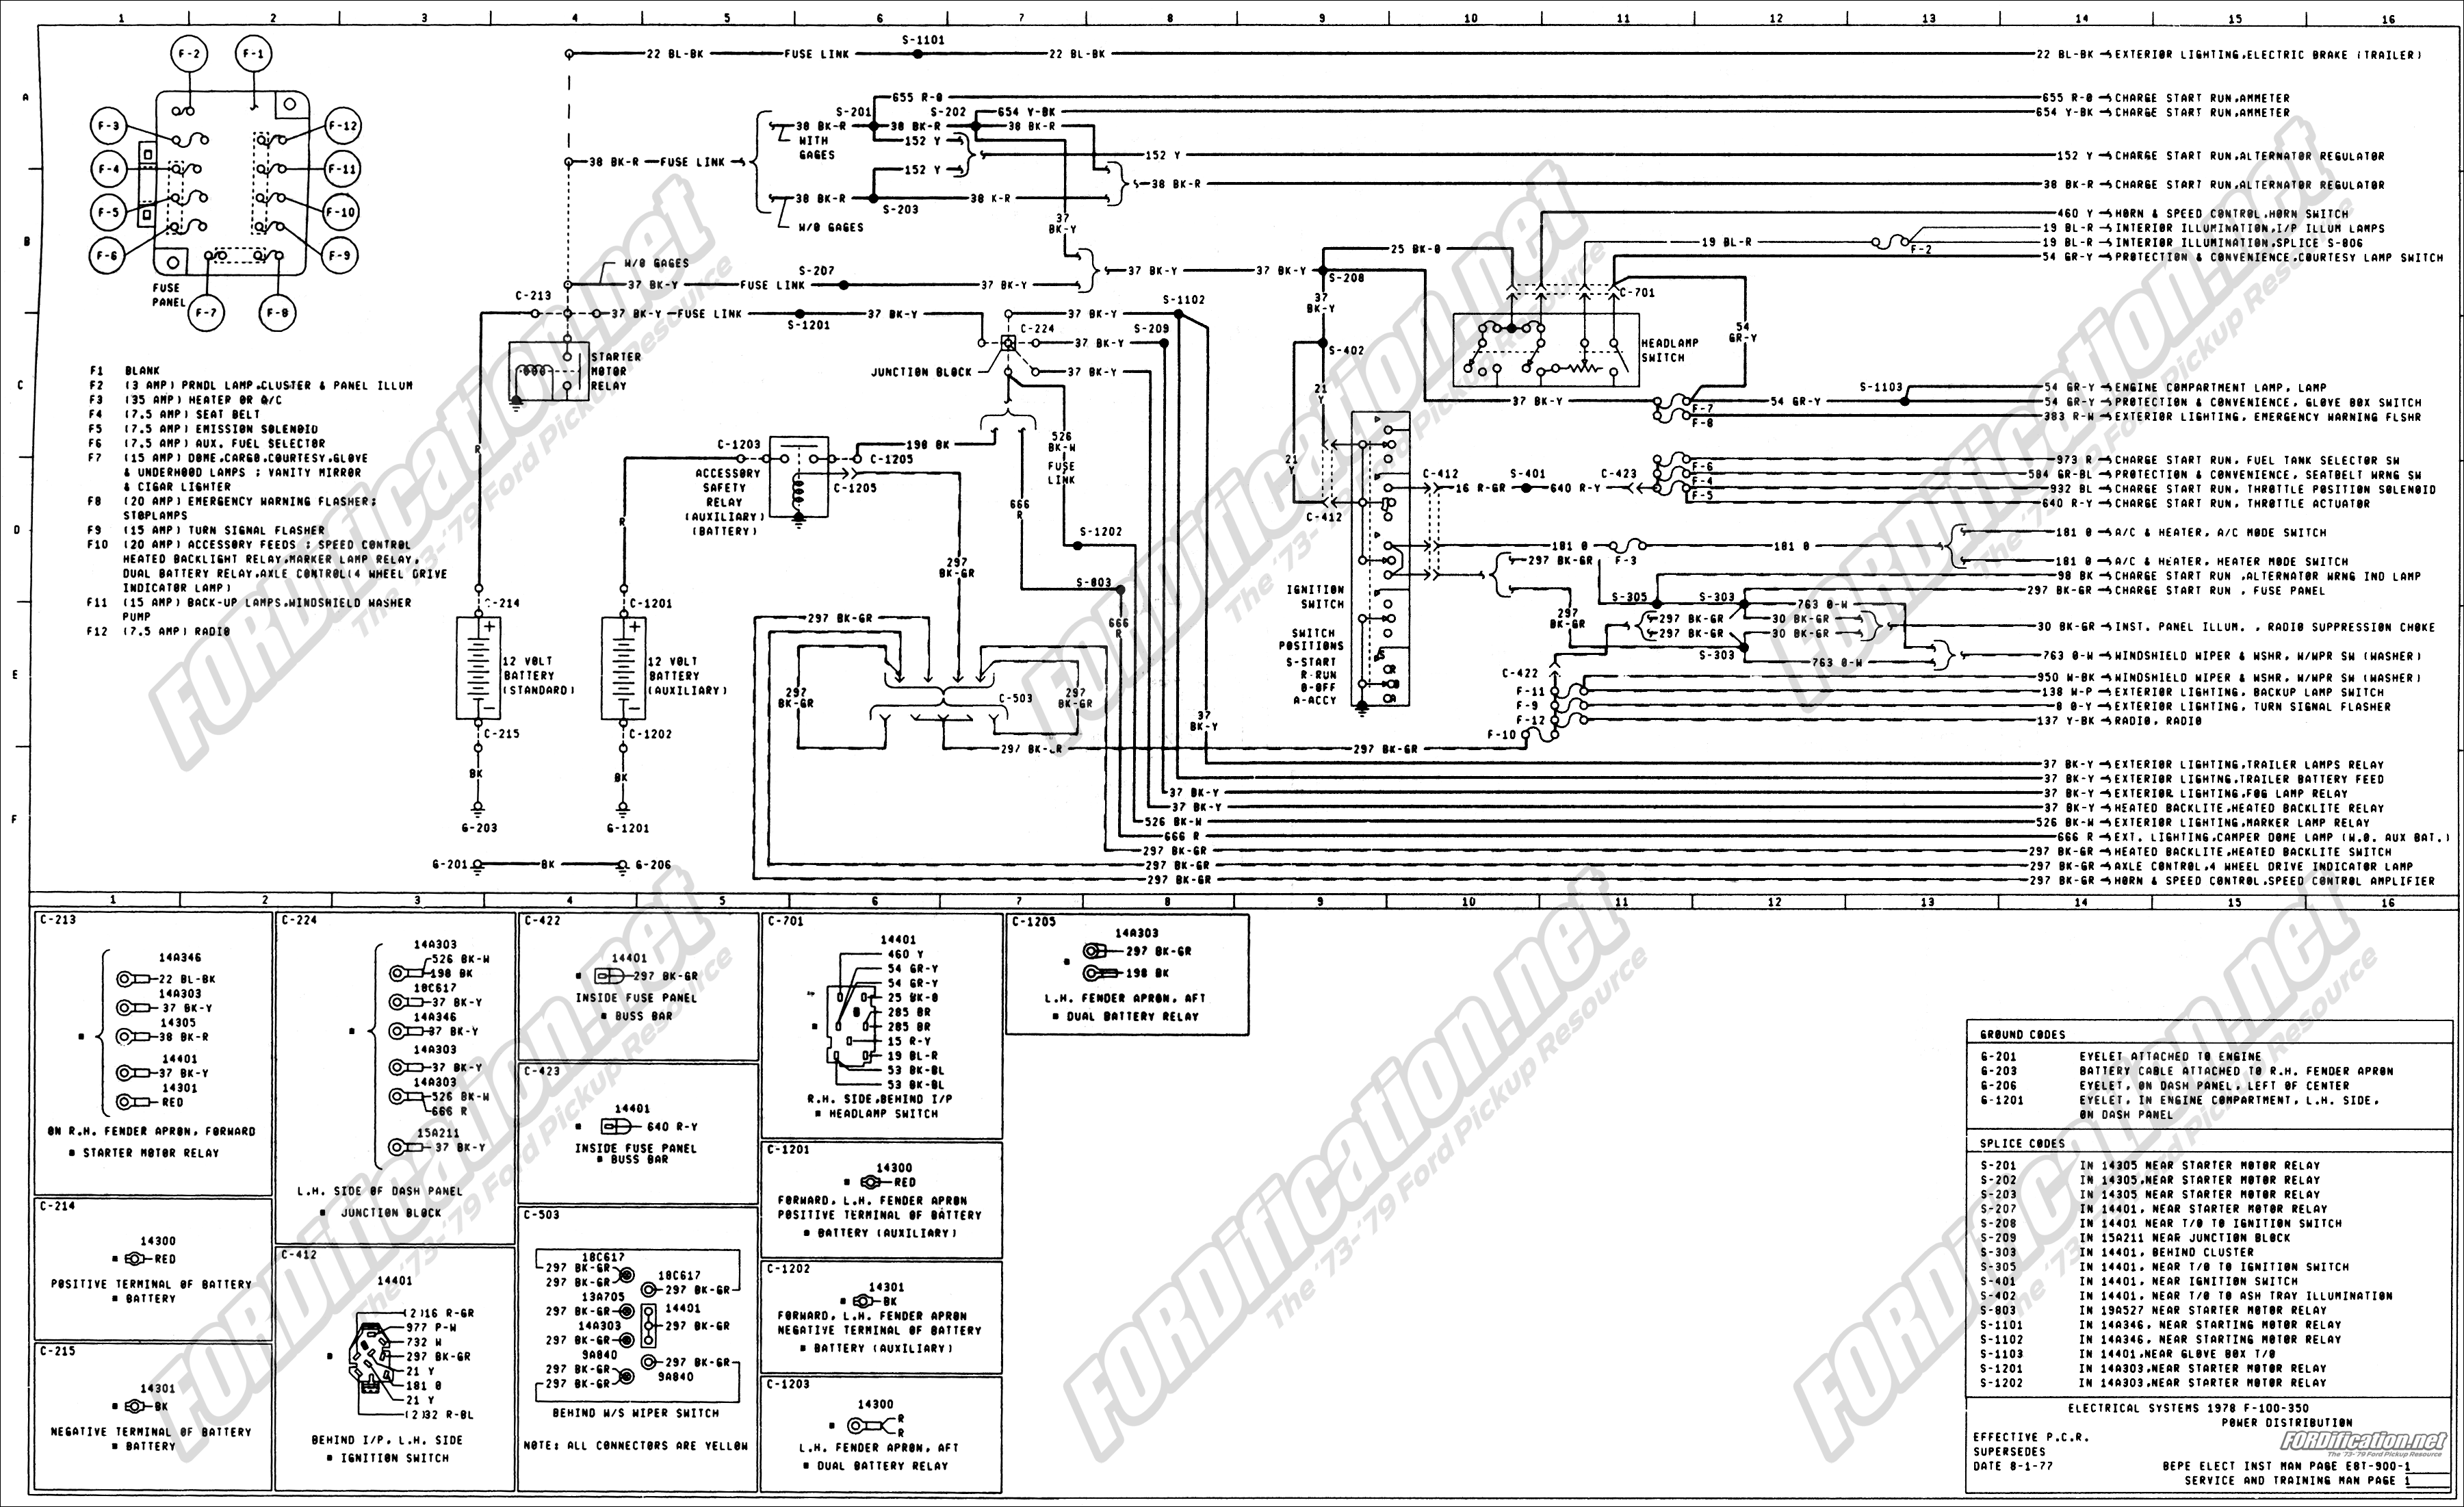 1976 ford truck wiring diagram fuse block 1976 - ford truck enthusiasts forums #10